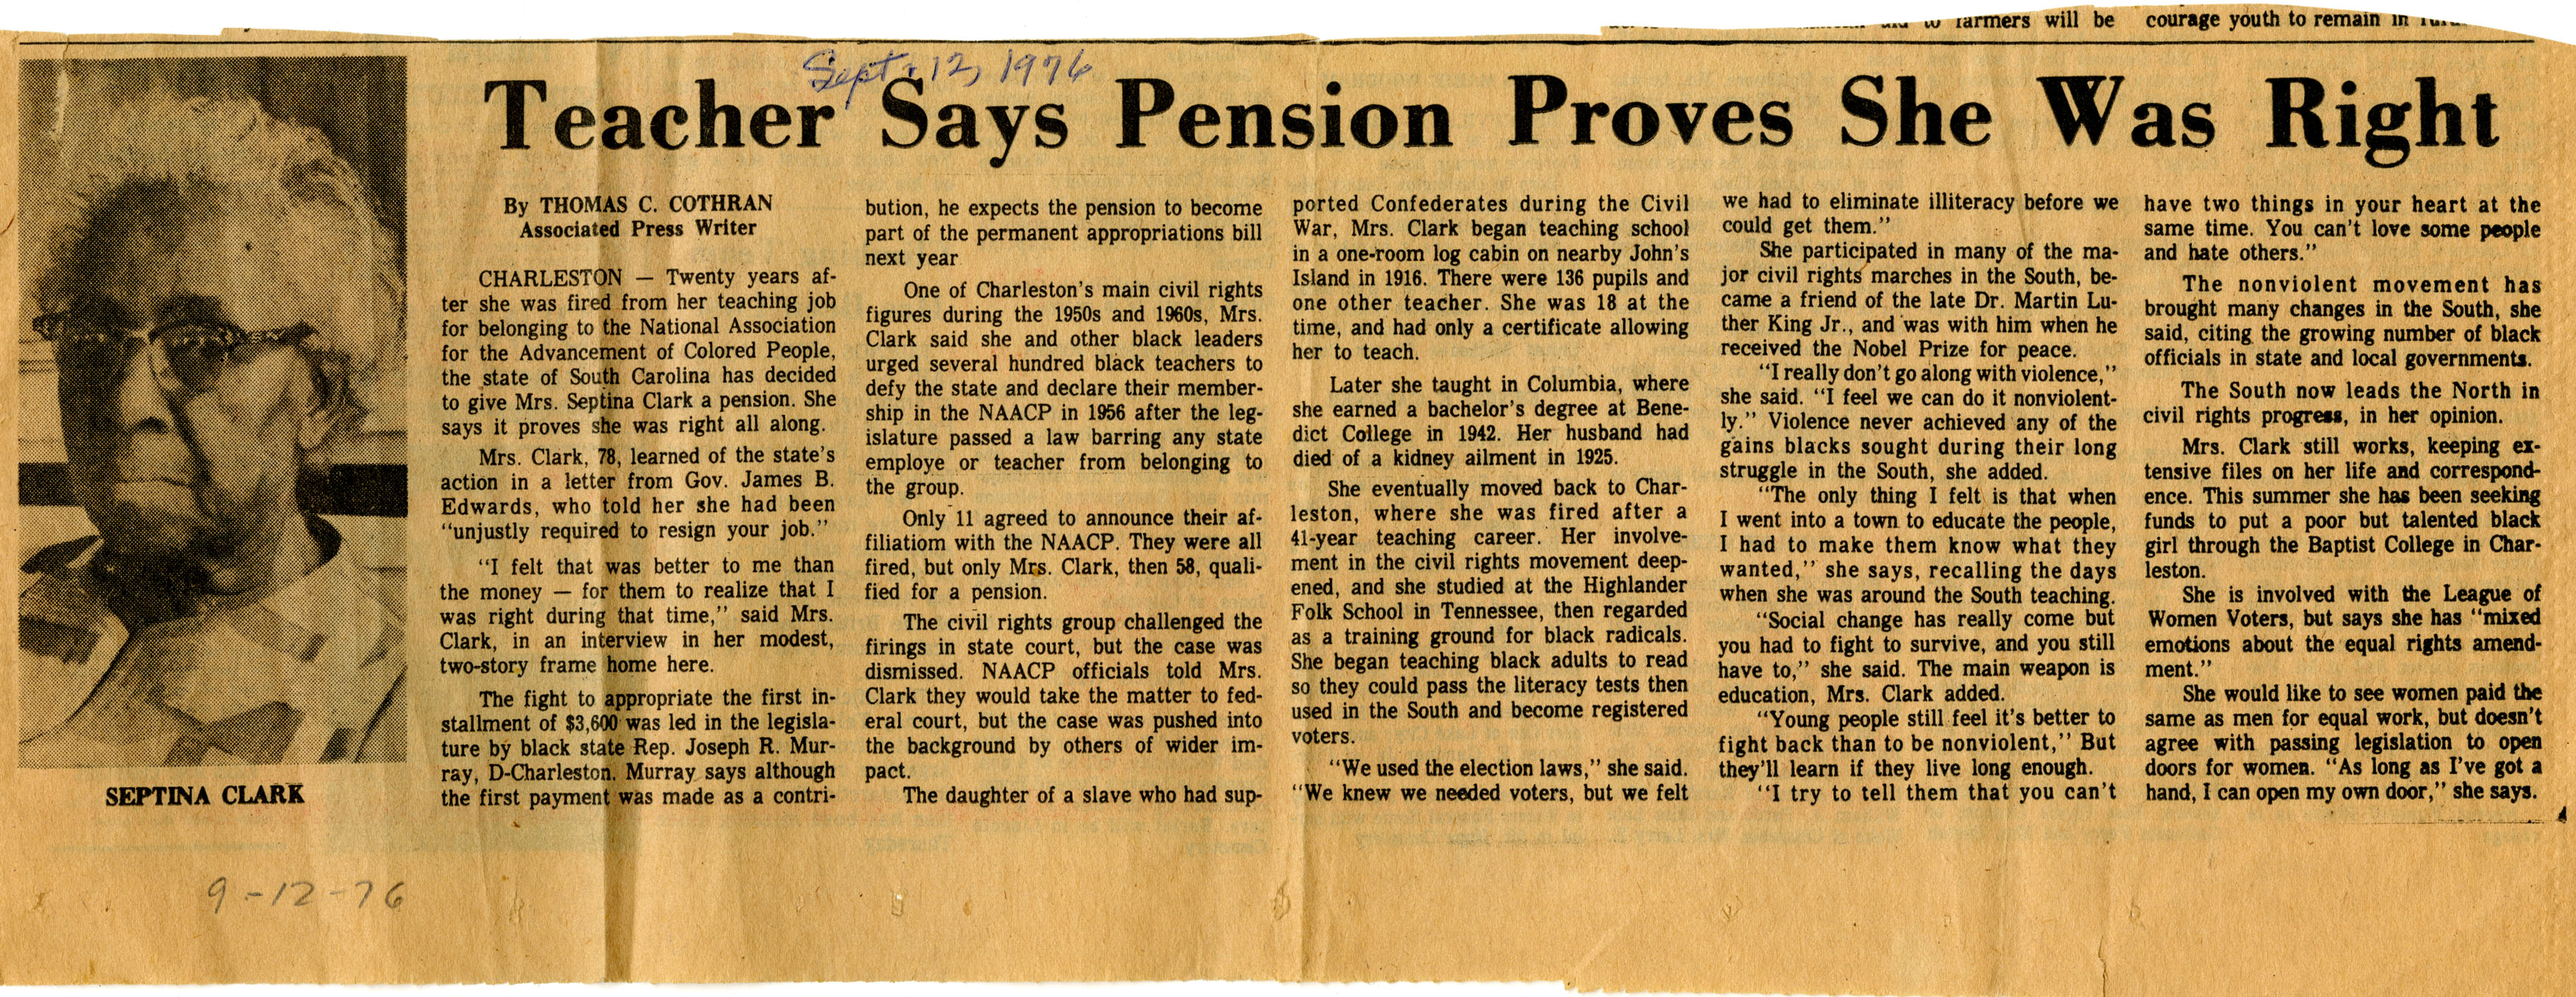 Newspaper Article, September 12, 1976